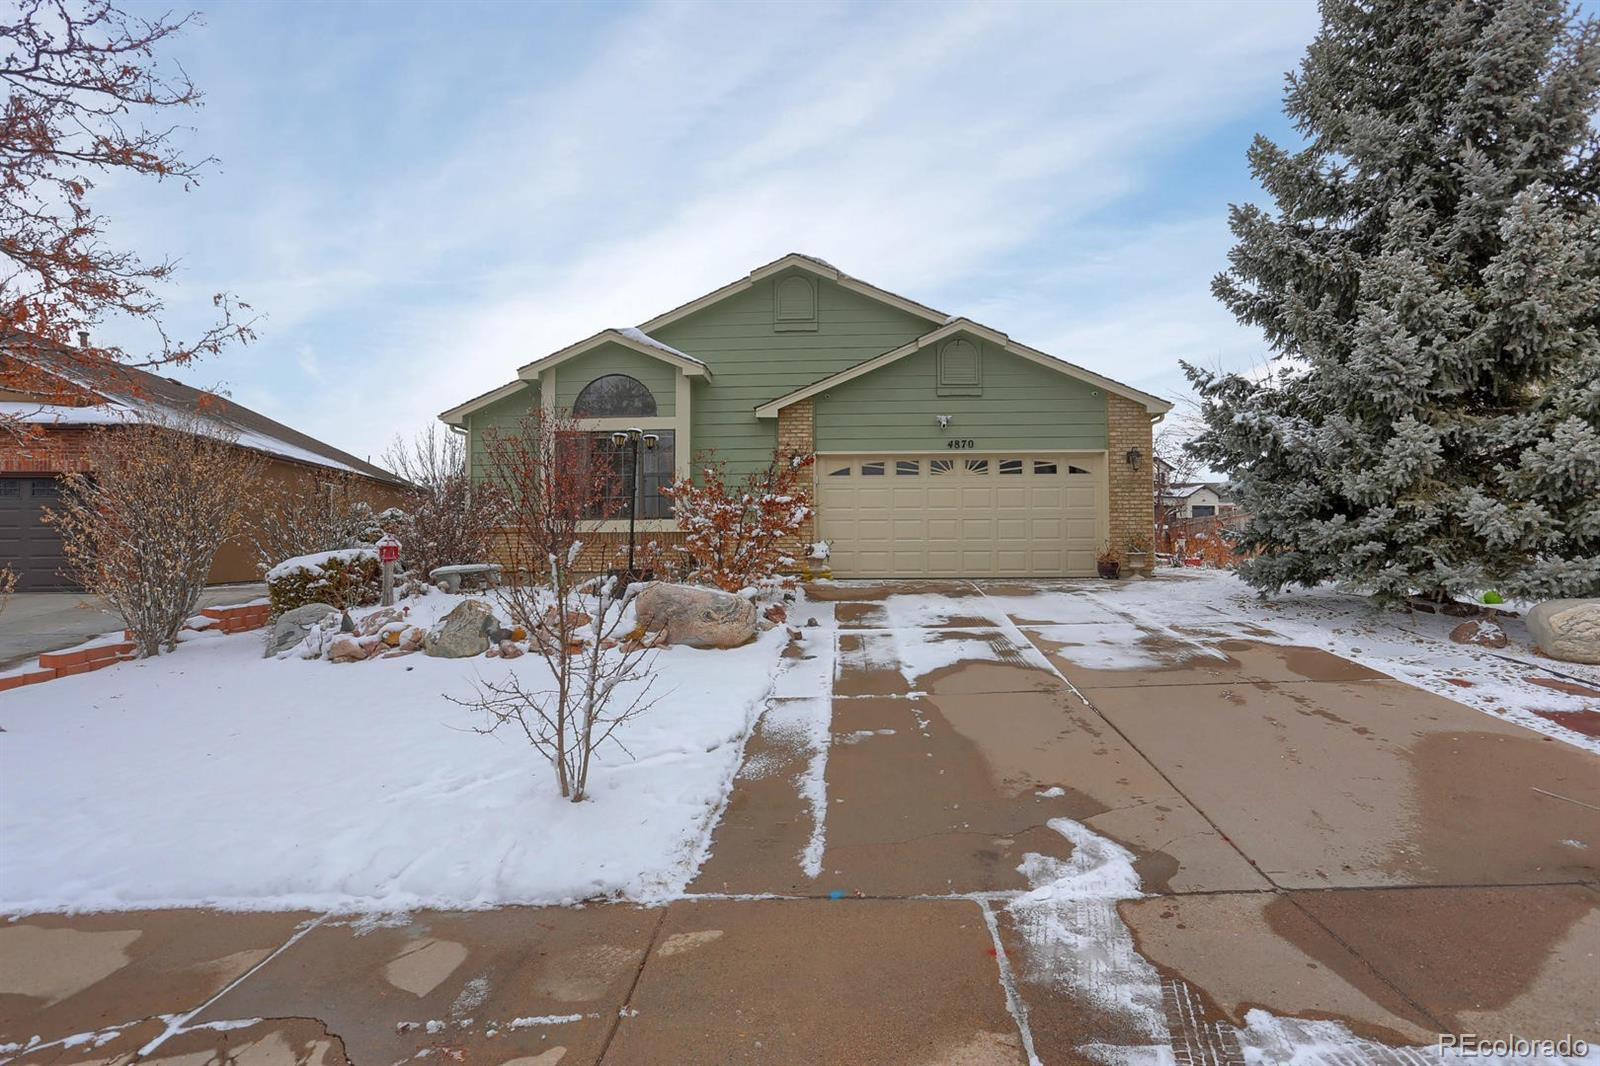 MLS# 9468423 - 1 - 4870 Purcell Drive, Colorado Springs, CO 80922